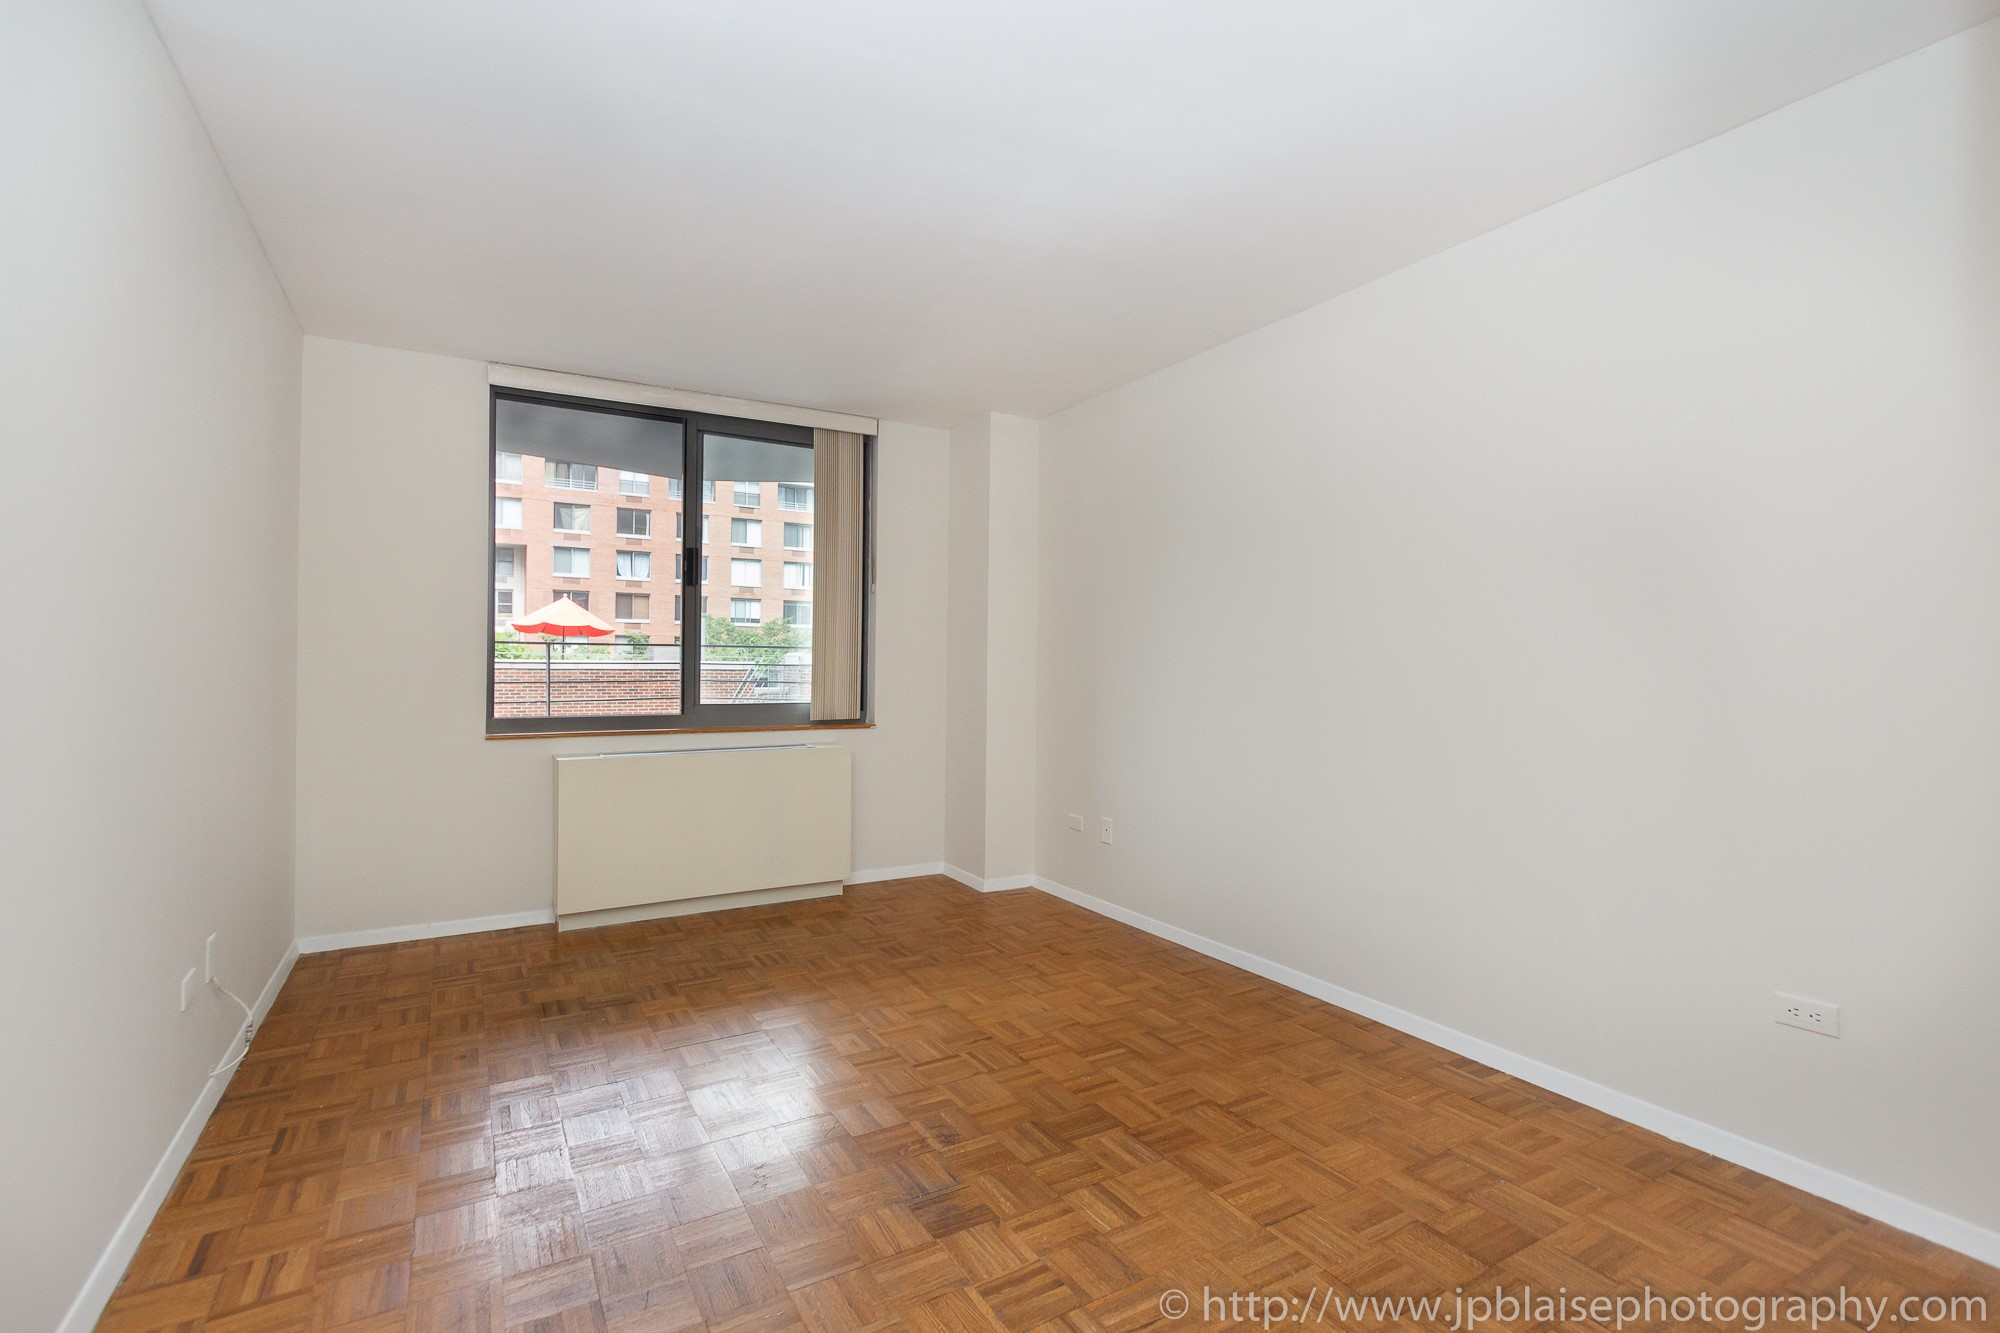 Real estate photographer diaries one bedroom apartment in - One bedroom apartment in new york city ...